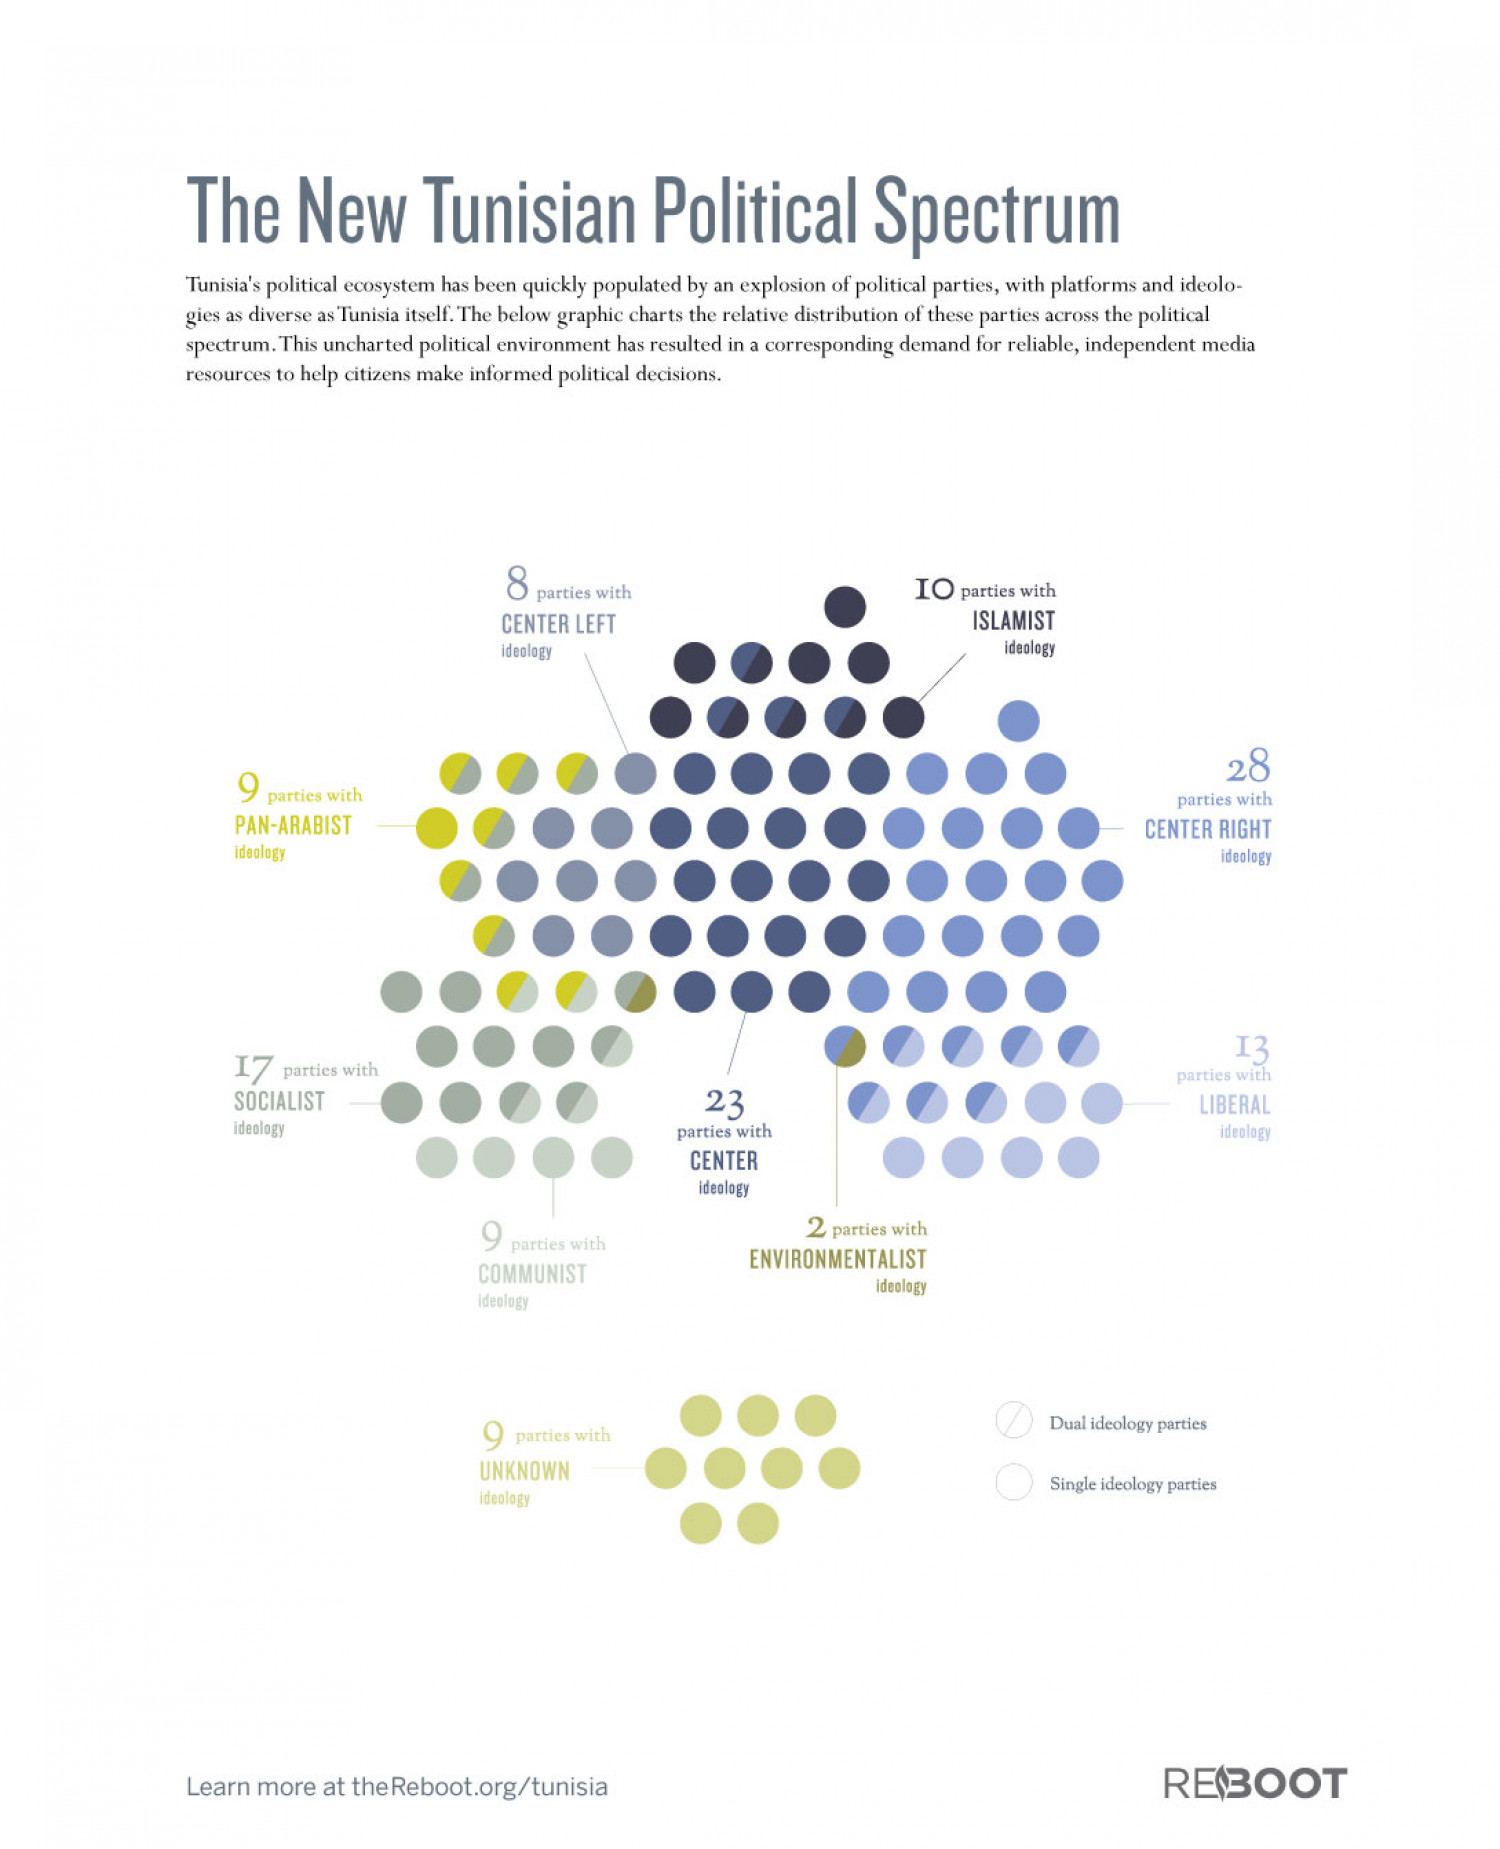 The Post-Revolution Tunisian Political Spectrum Infographic